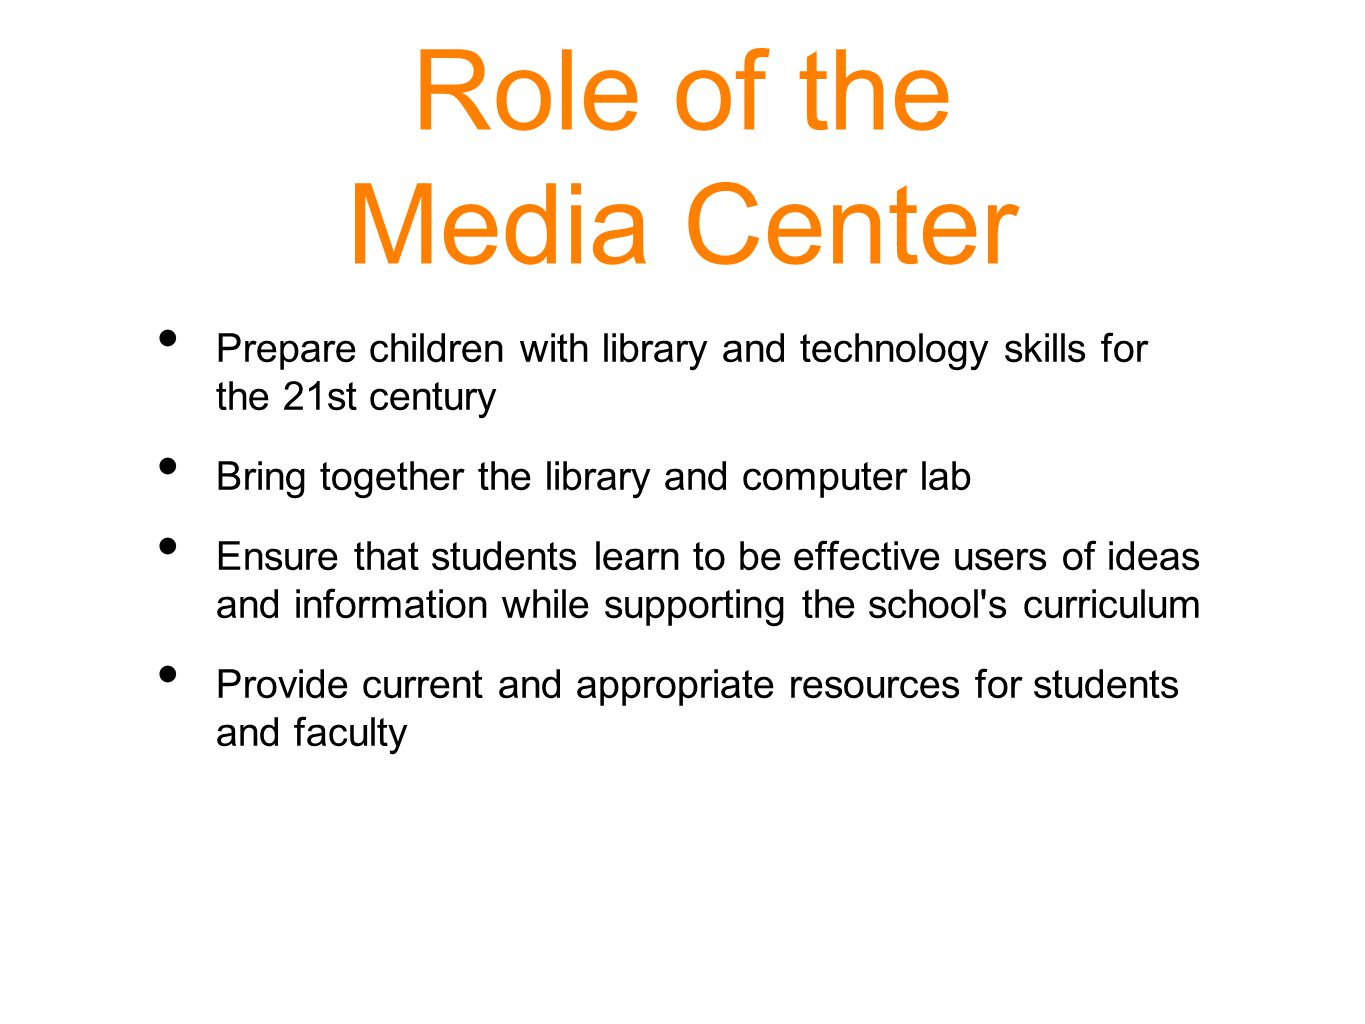 Session This session will focus on collaborative projects for research, enrichment and skill development that engage kindergarten through third grade learners in the library and computer lab.